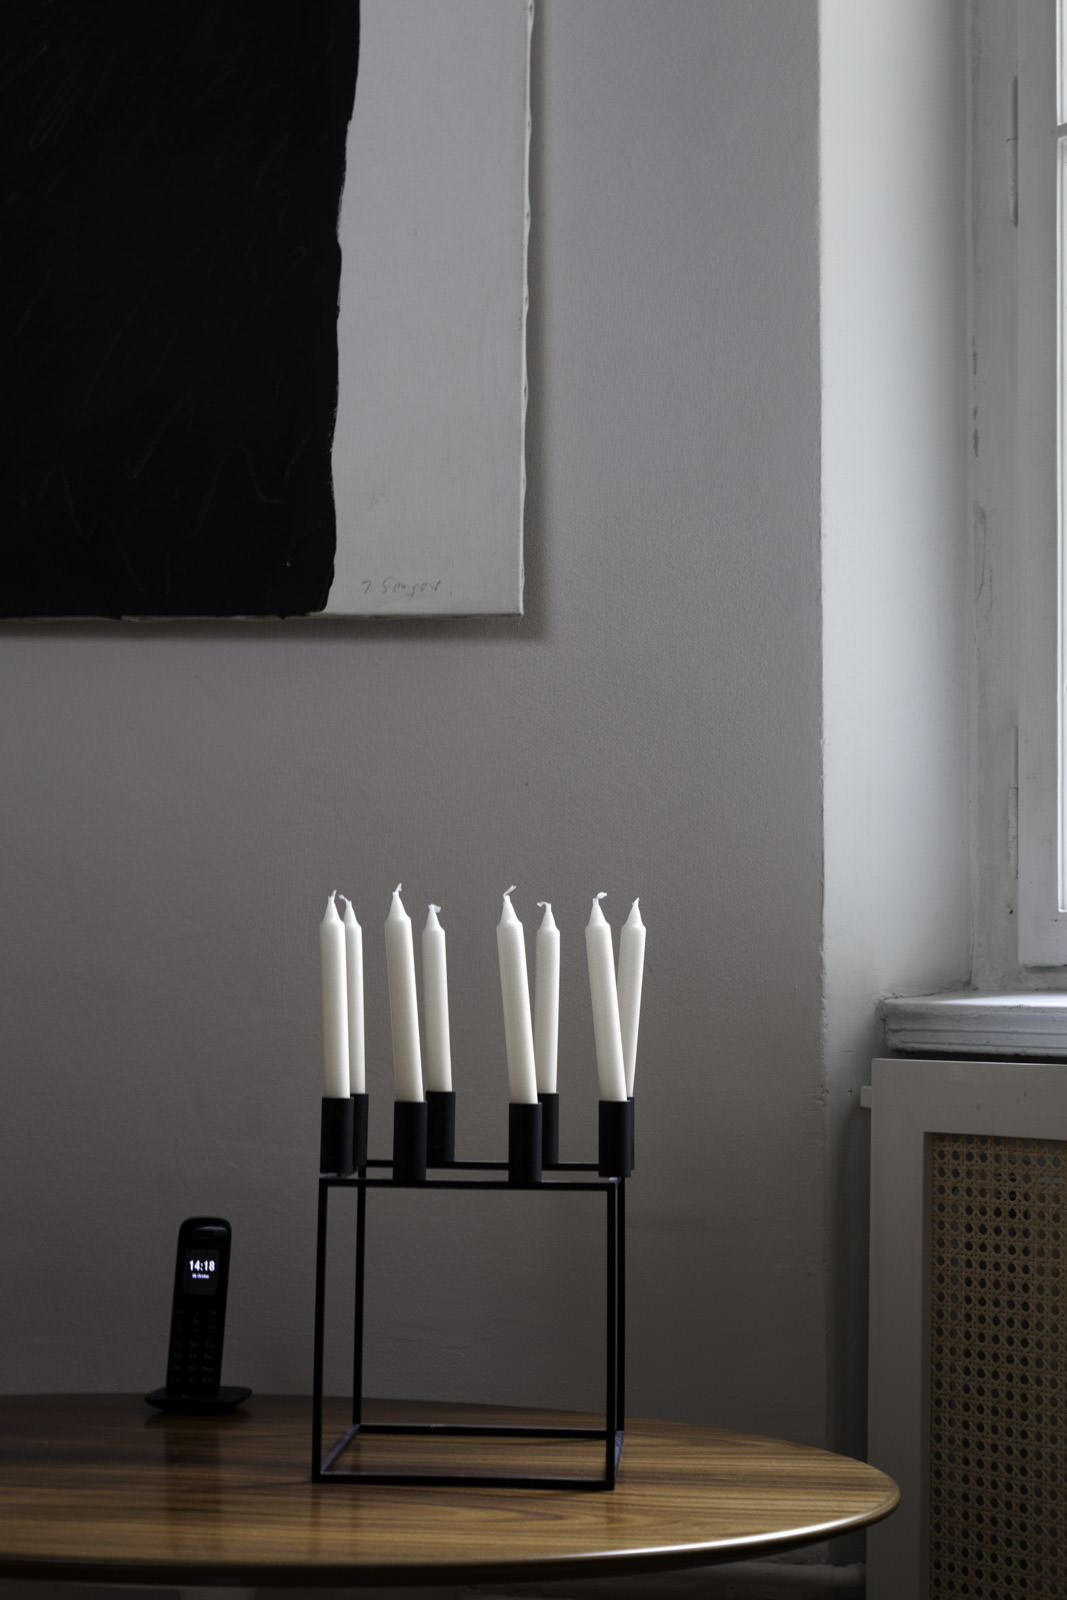 black and white, art and candles